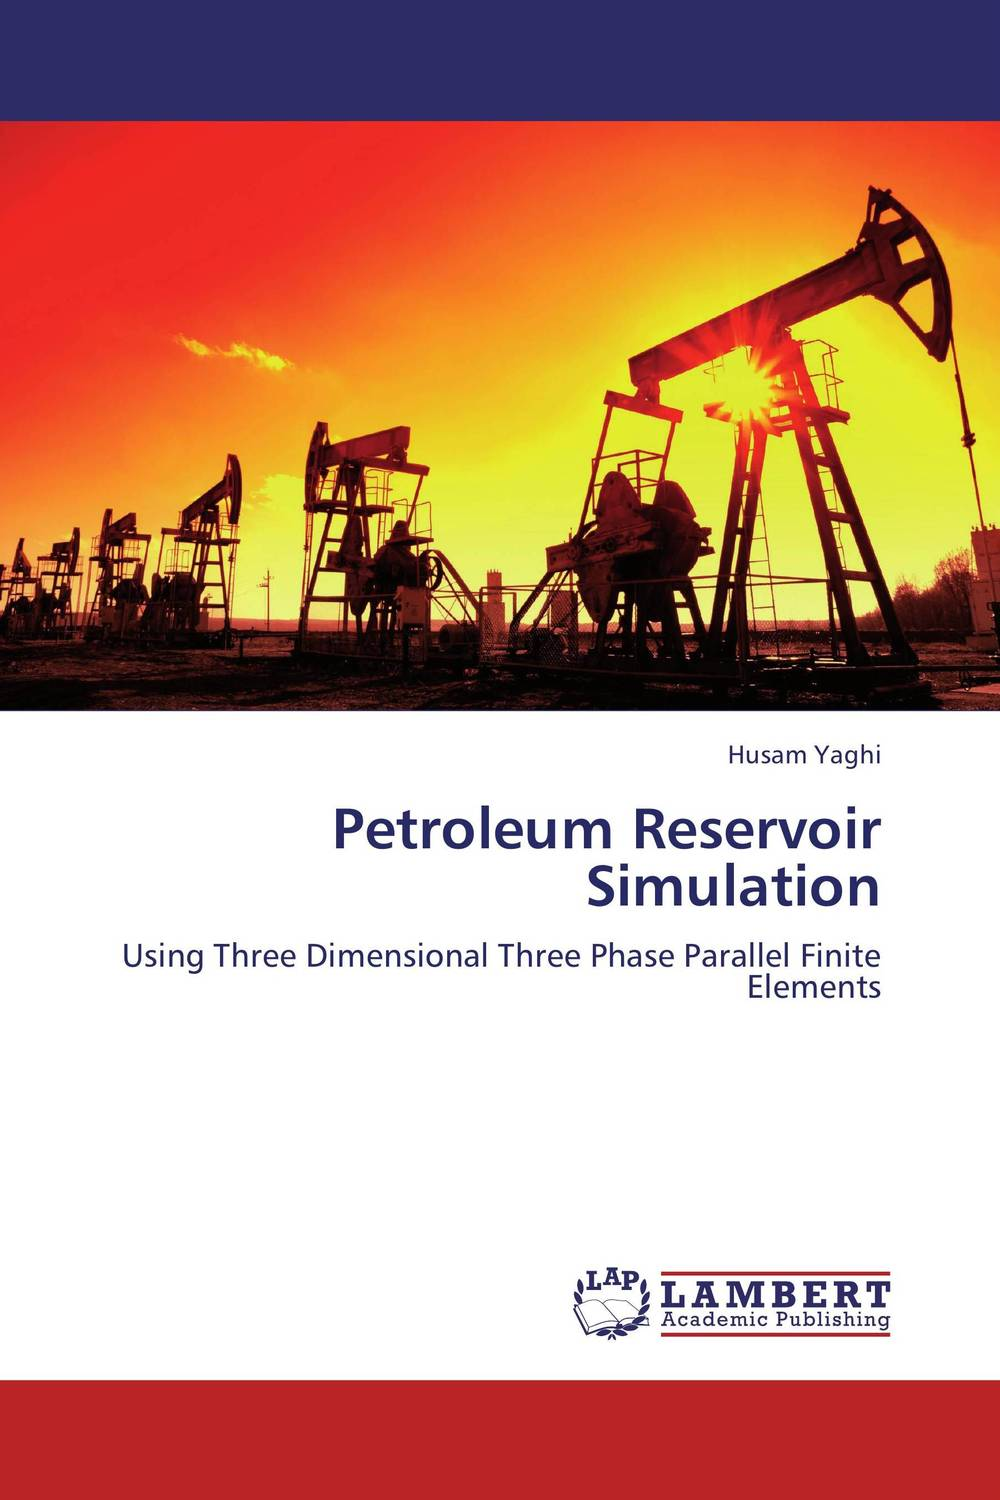 Petroleum Reservoir Simulation dearomatization of crude oil